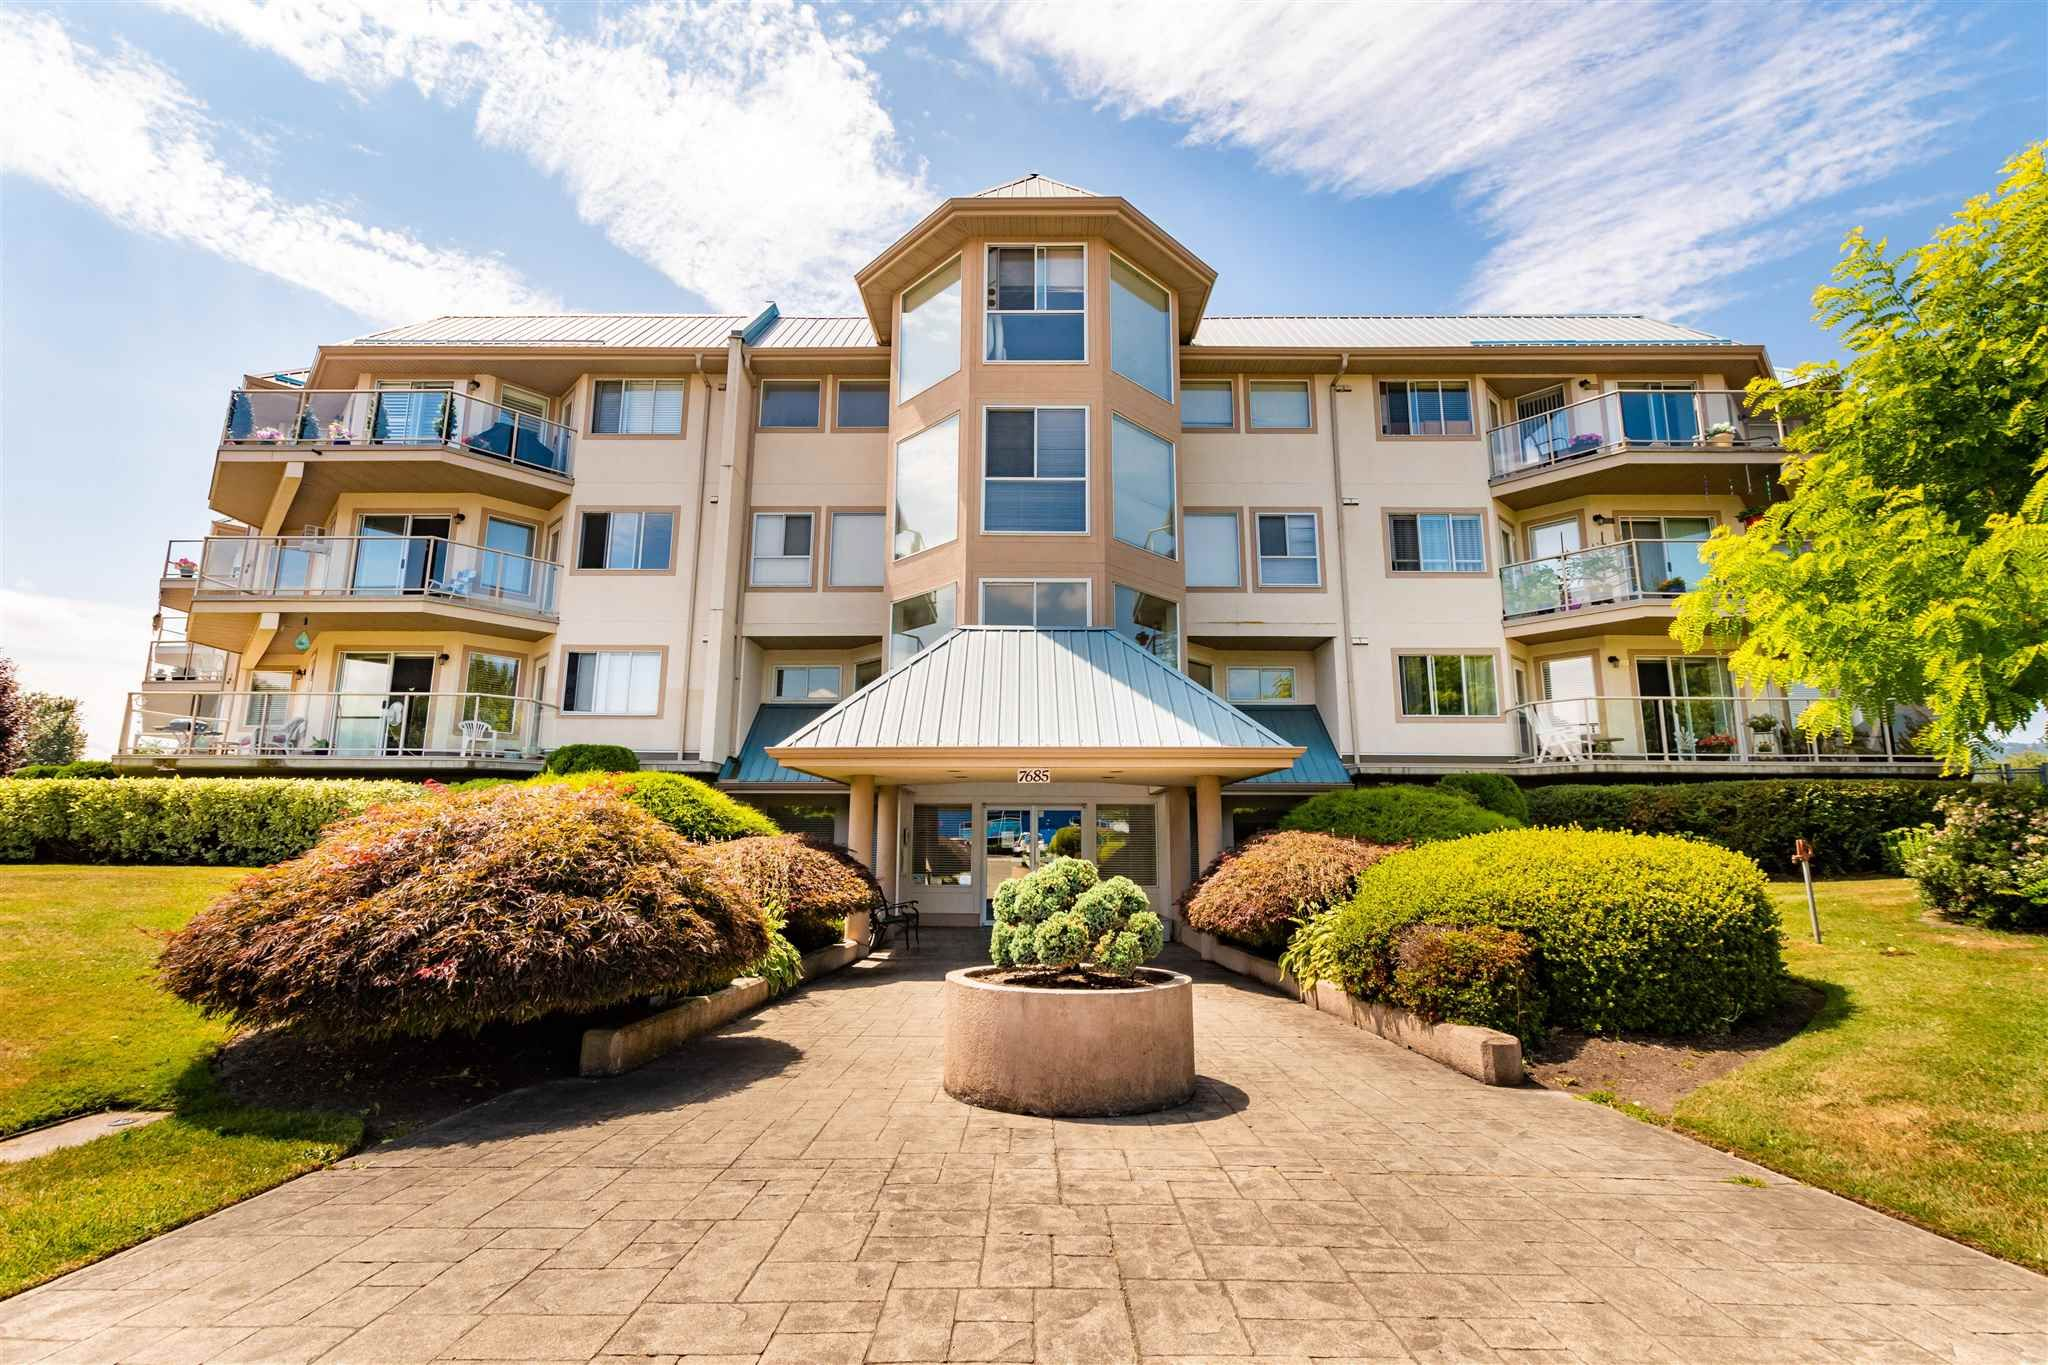 """Main Photo: 106 7685 AMBER Drive in Sardis: Sardis West Vedder Rd Condo for sale in """"The Sapphire"""" : MLS®# R2601700"""